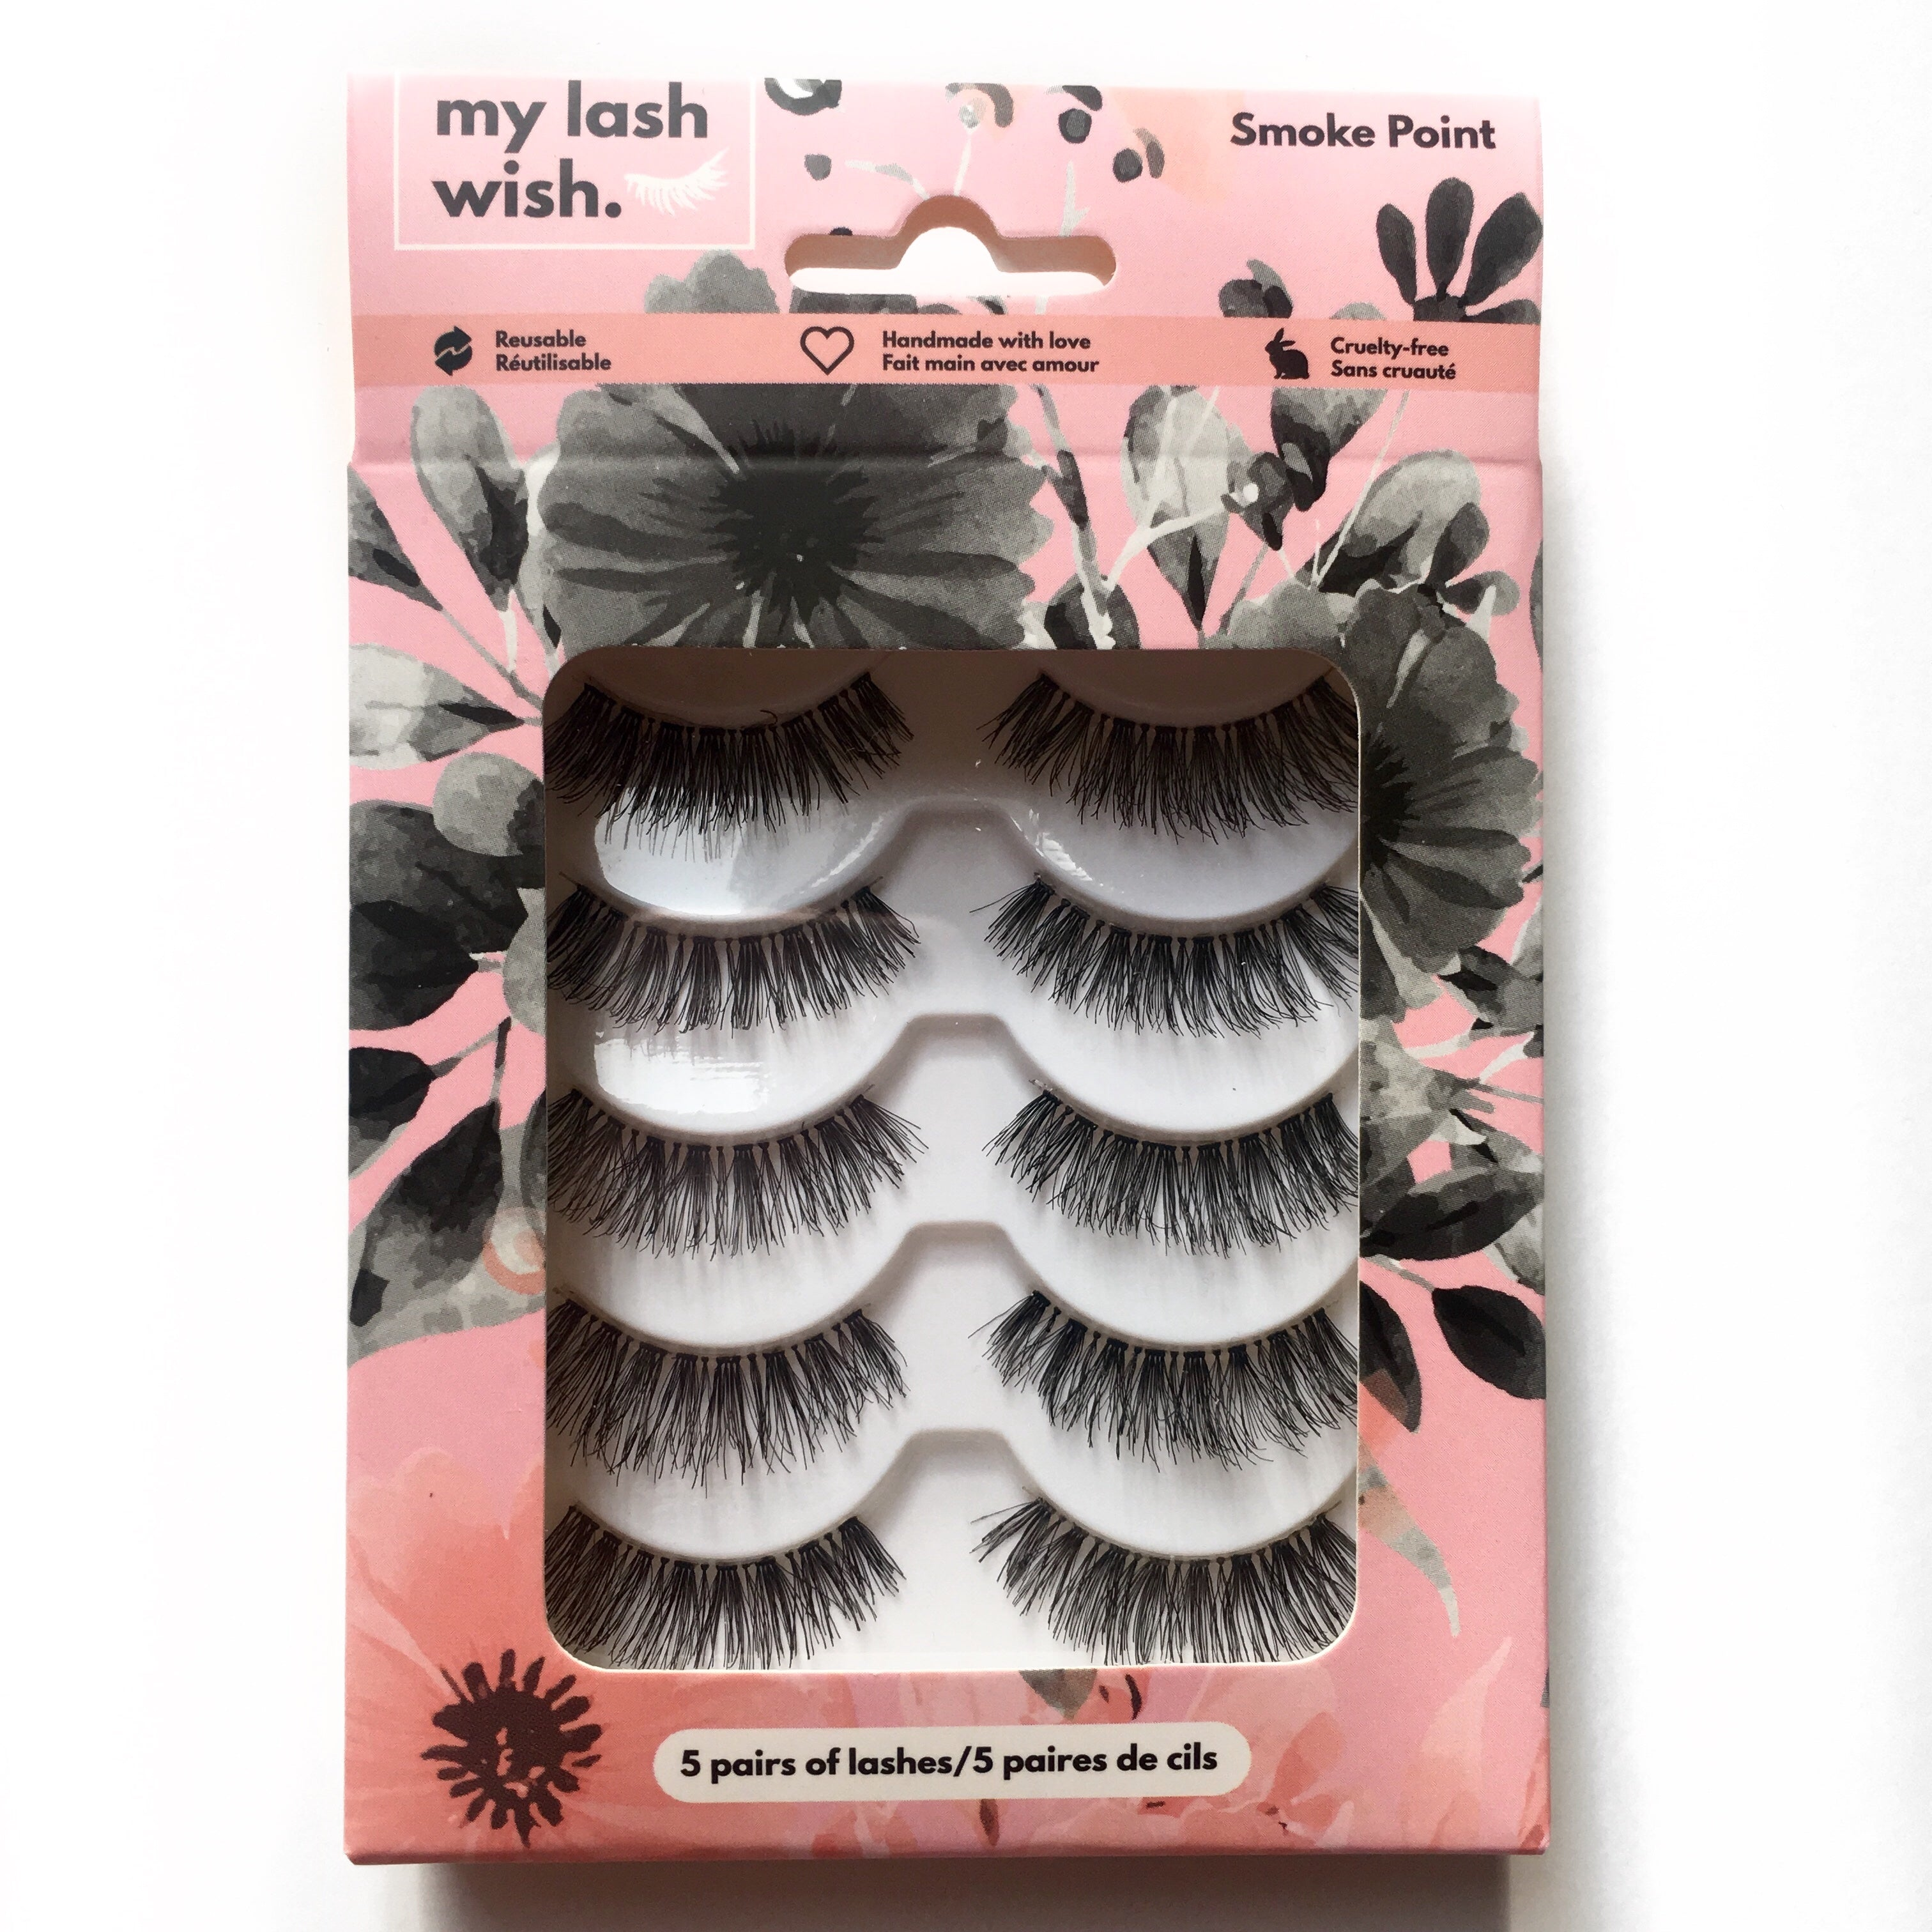 Smoke Point - My Lash Wish